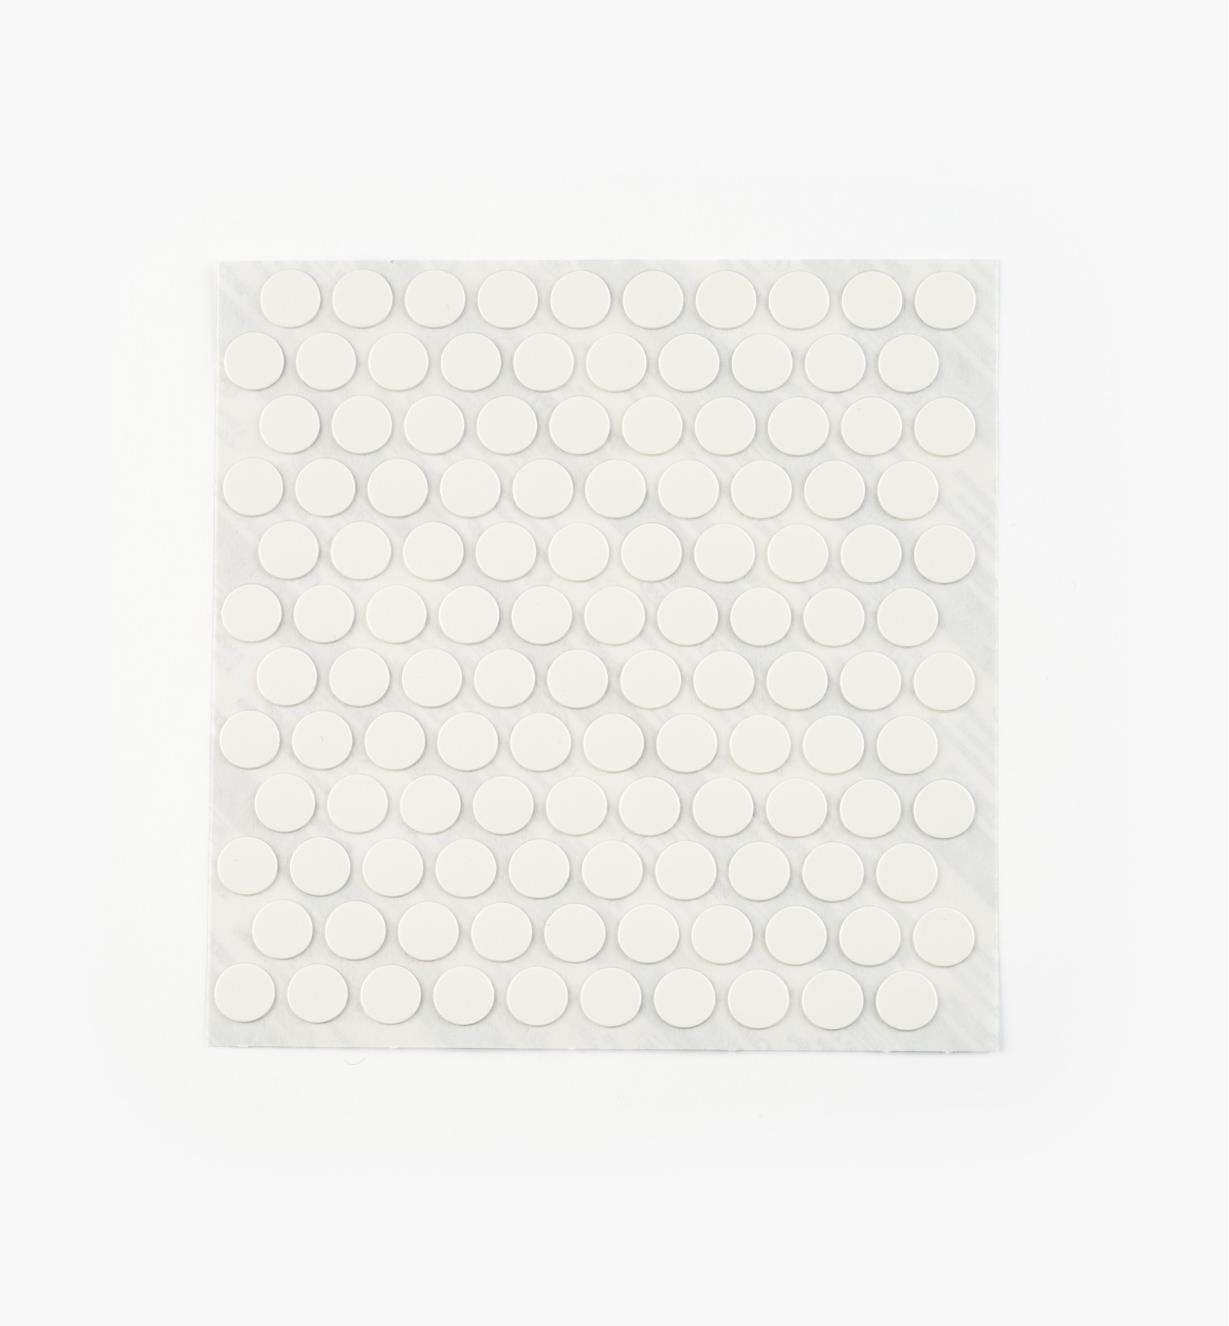 "00S5306 - 3/8"" White PVC Screw Covers,pkg. of 120"